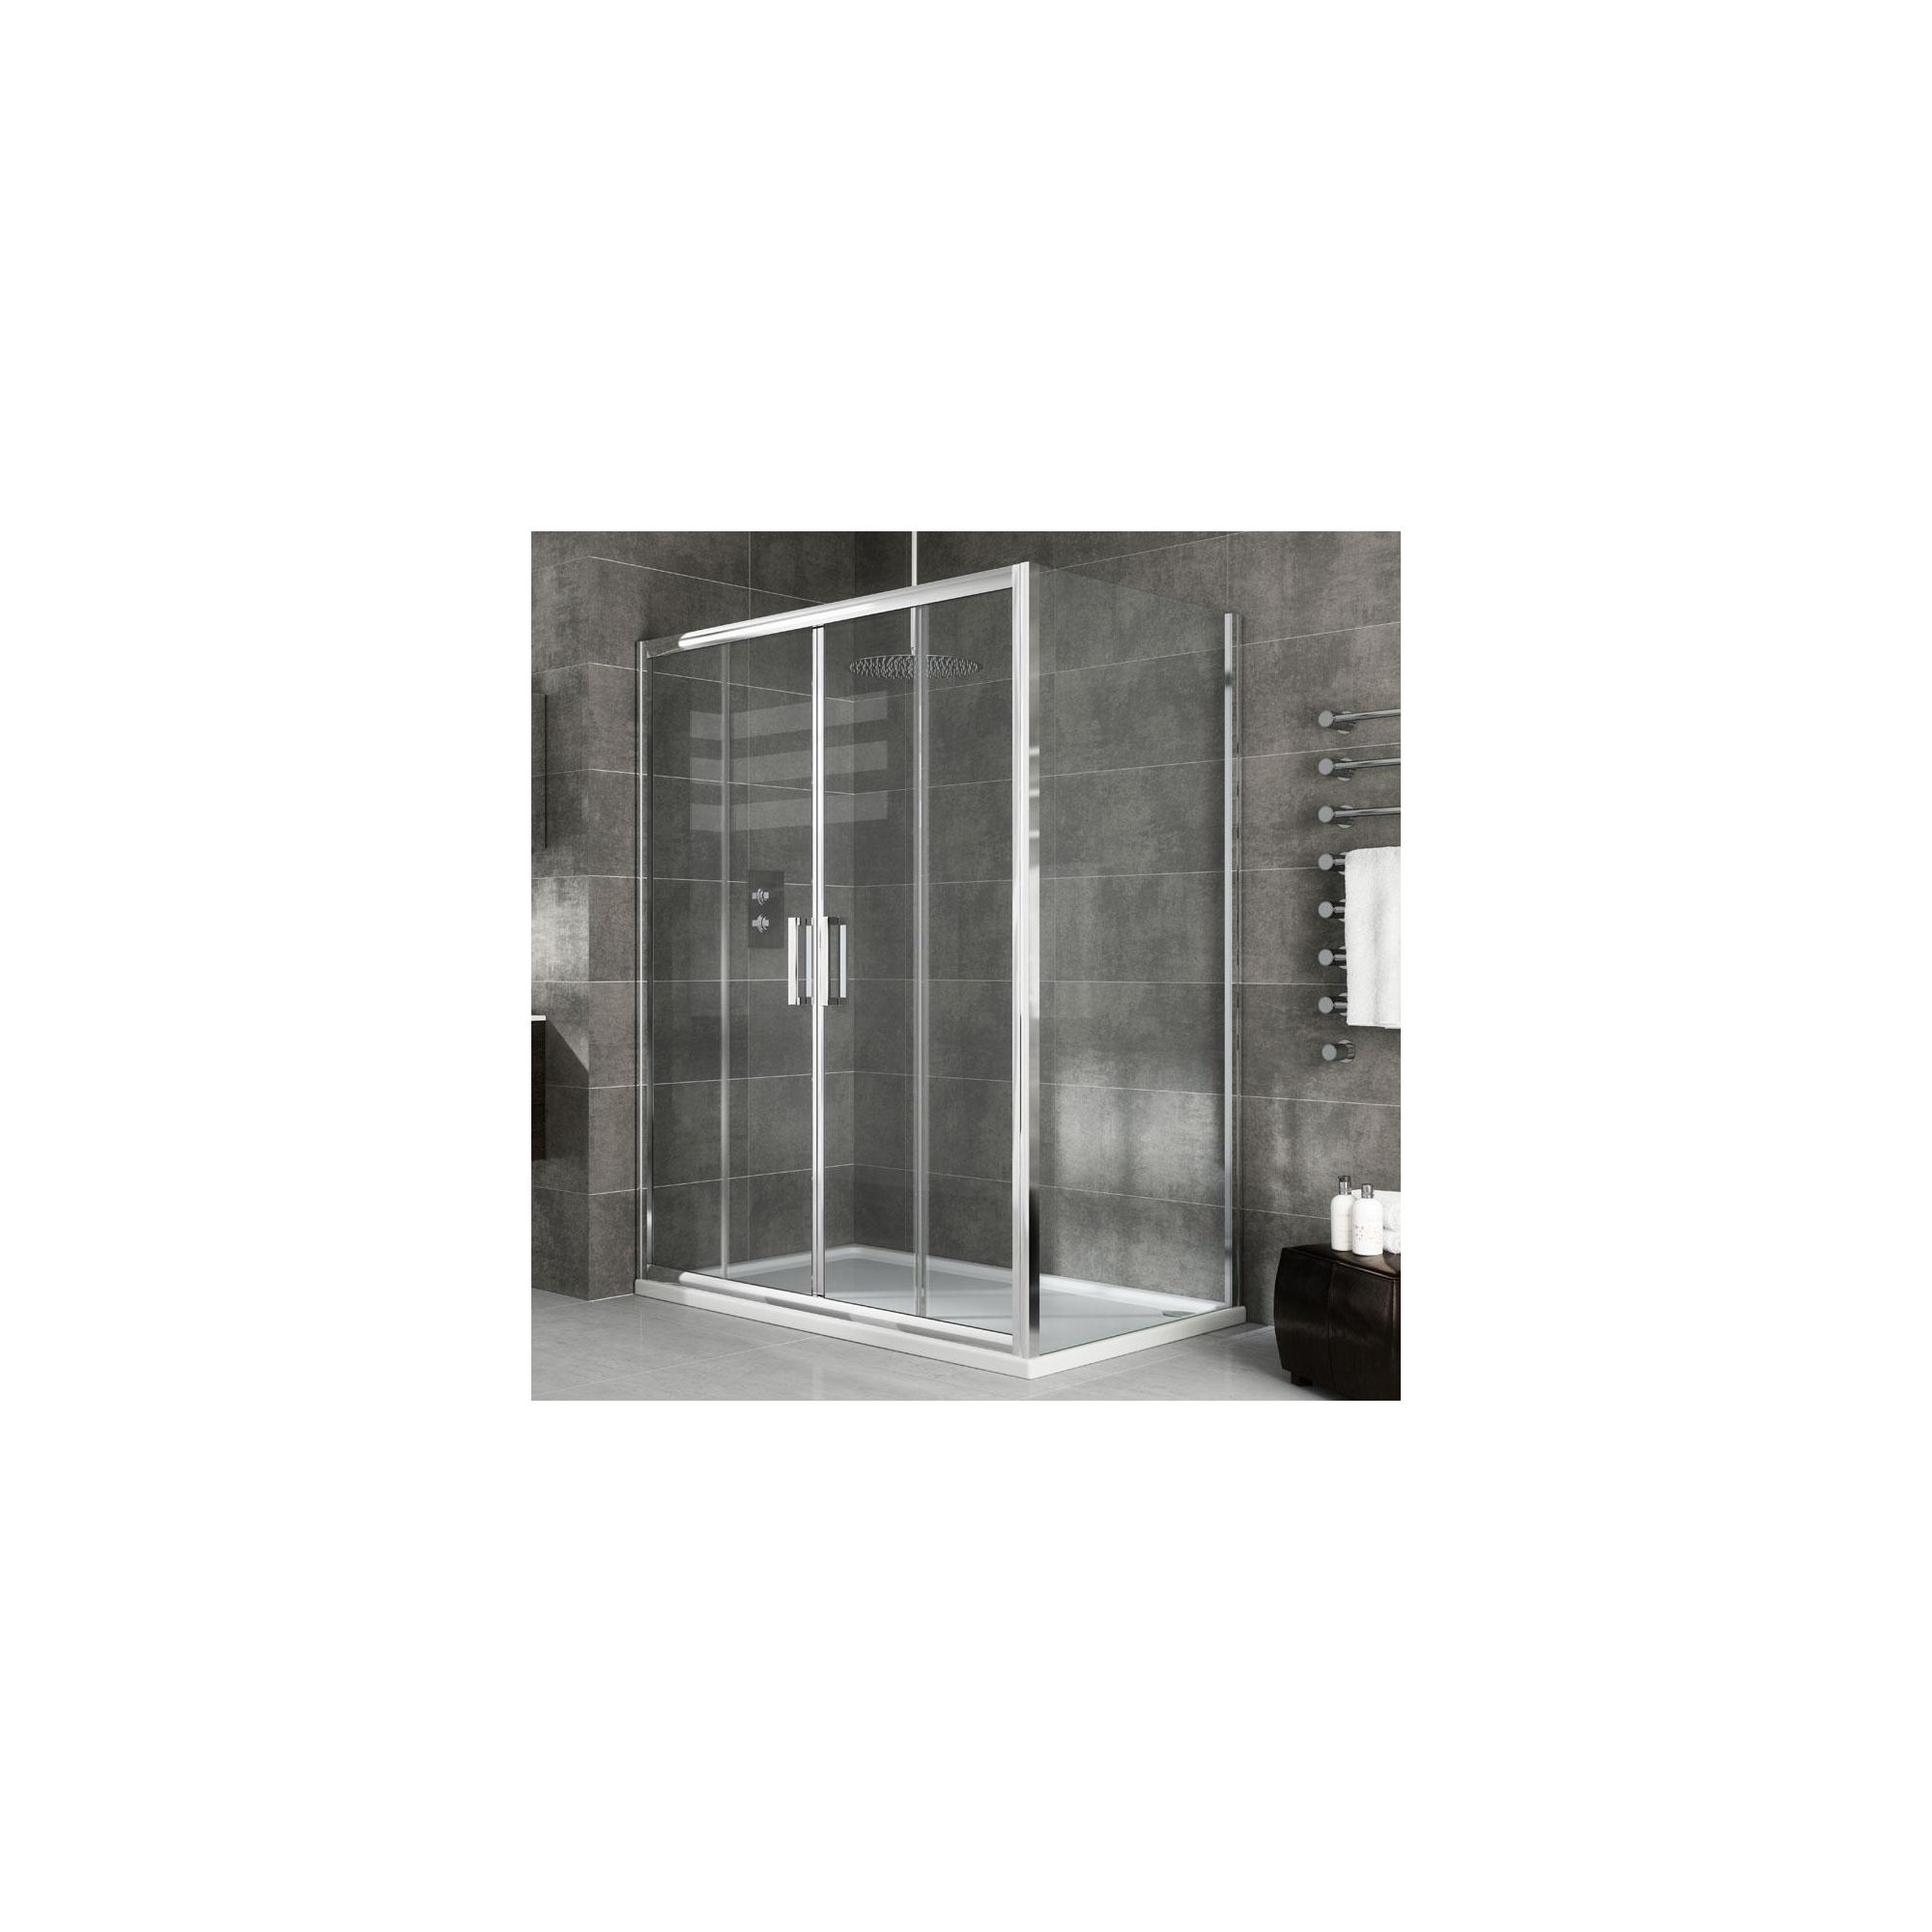 Elemis Eternity Two-Panel Jumbo Sliding Door Shower Enclosure, 1100mm x 900mm, 8mm Glass, Low Profile Tray at Tesco Direct